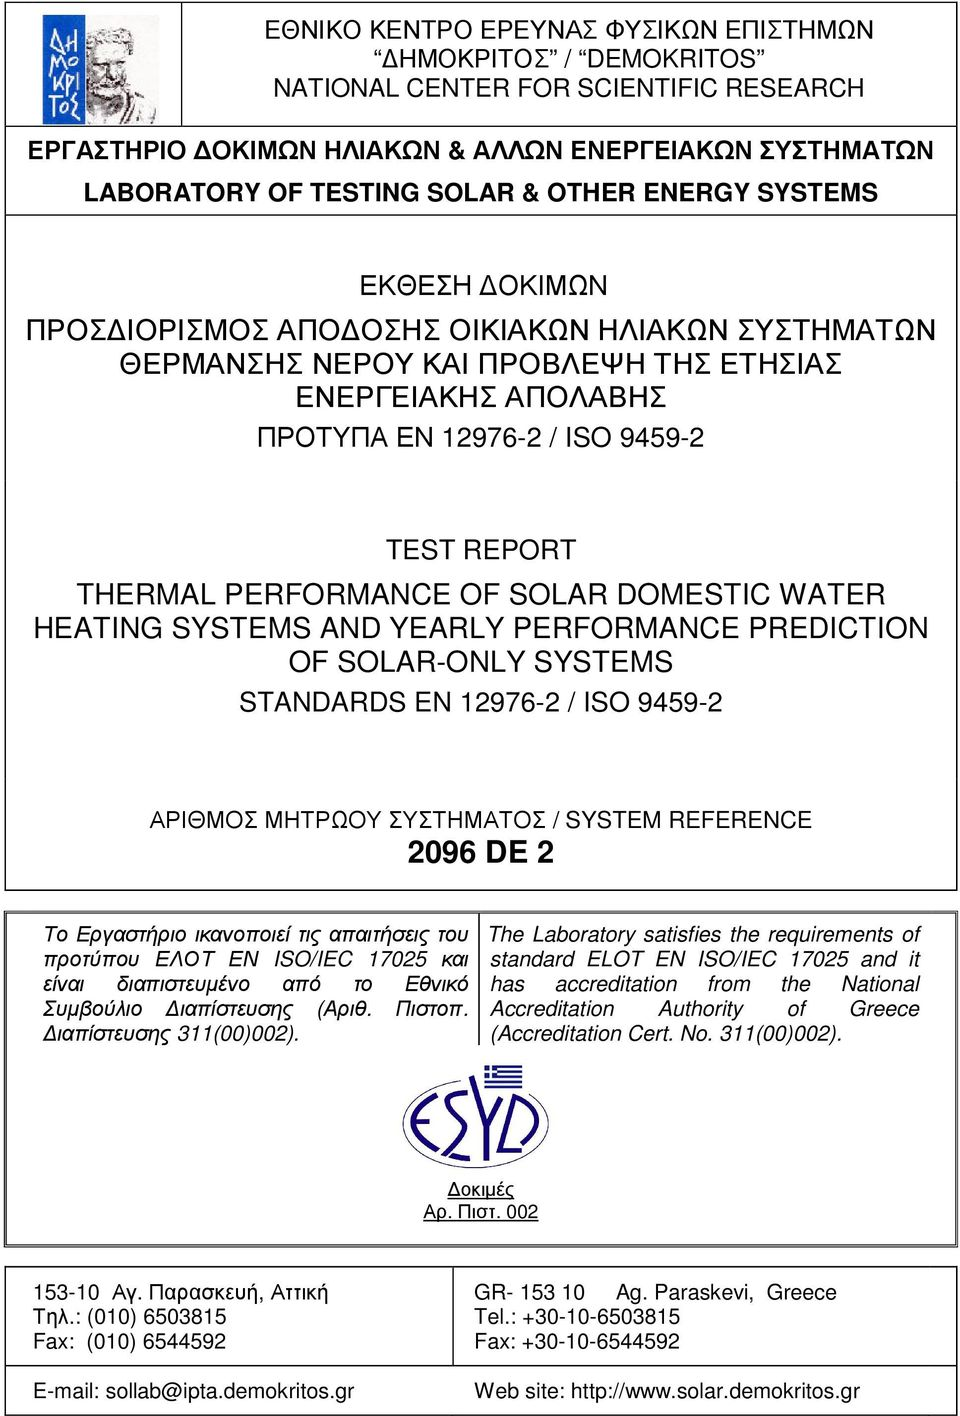 PERFORMANCE OF SOLAR DOMESTIC WATER HEATING SYSTEMS AND YEARLY PERFORMANCE PREDICTION OF SOLAR-ONLY SYSTEMS STANDARDS EN 12976-2 / ISO 9459-2 ΑΡΙΘΜΟΣ ΜΗΤΡΩΟΥ ΣΥΣΤΗΜΑΤΟΣ / SYSTEM REFERENCE 2096 DE 2